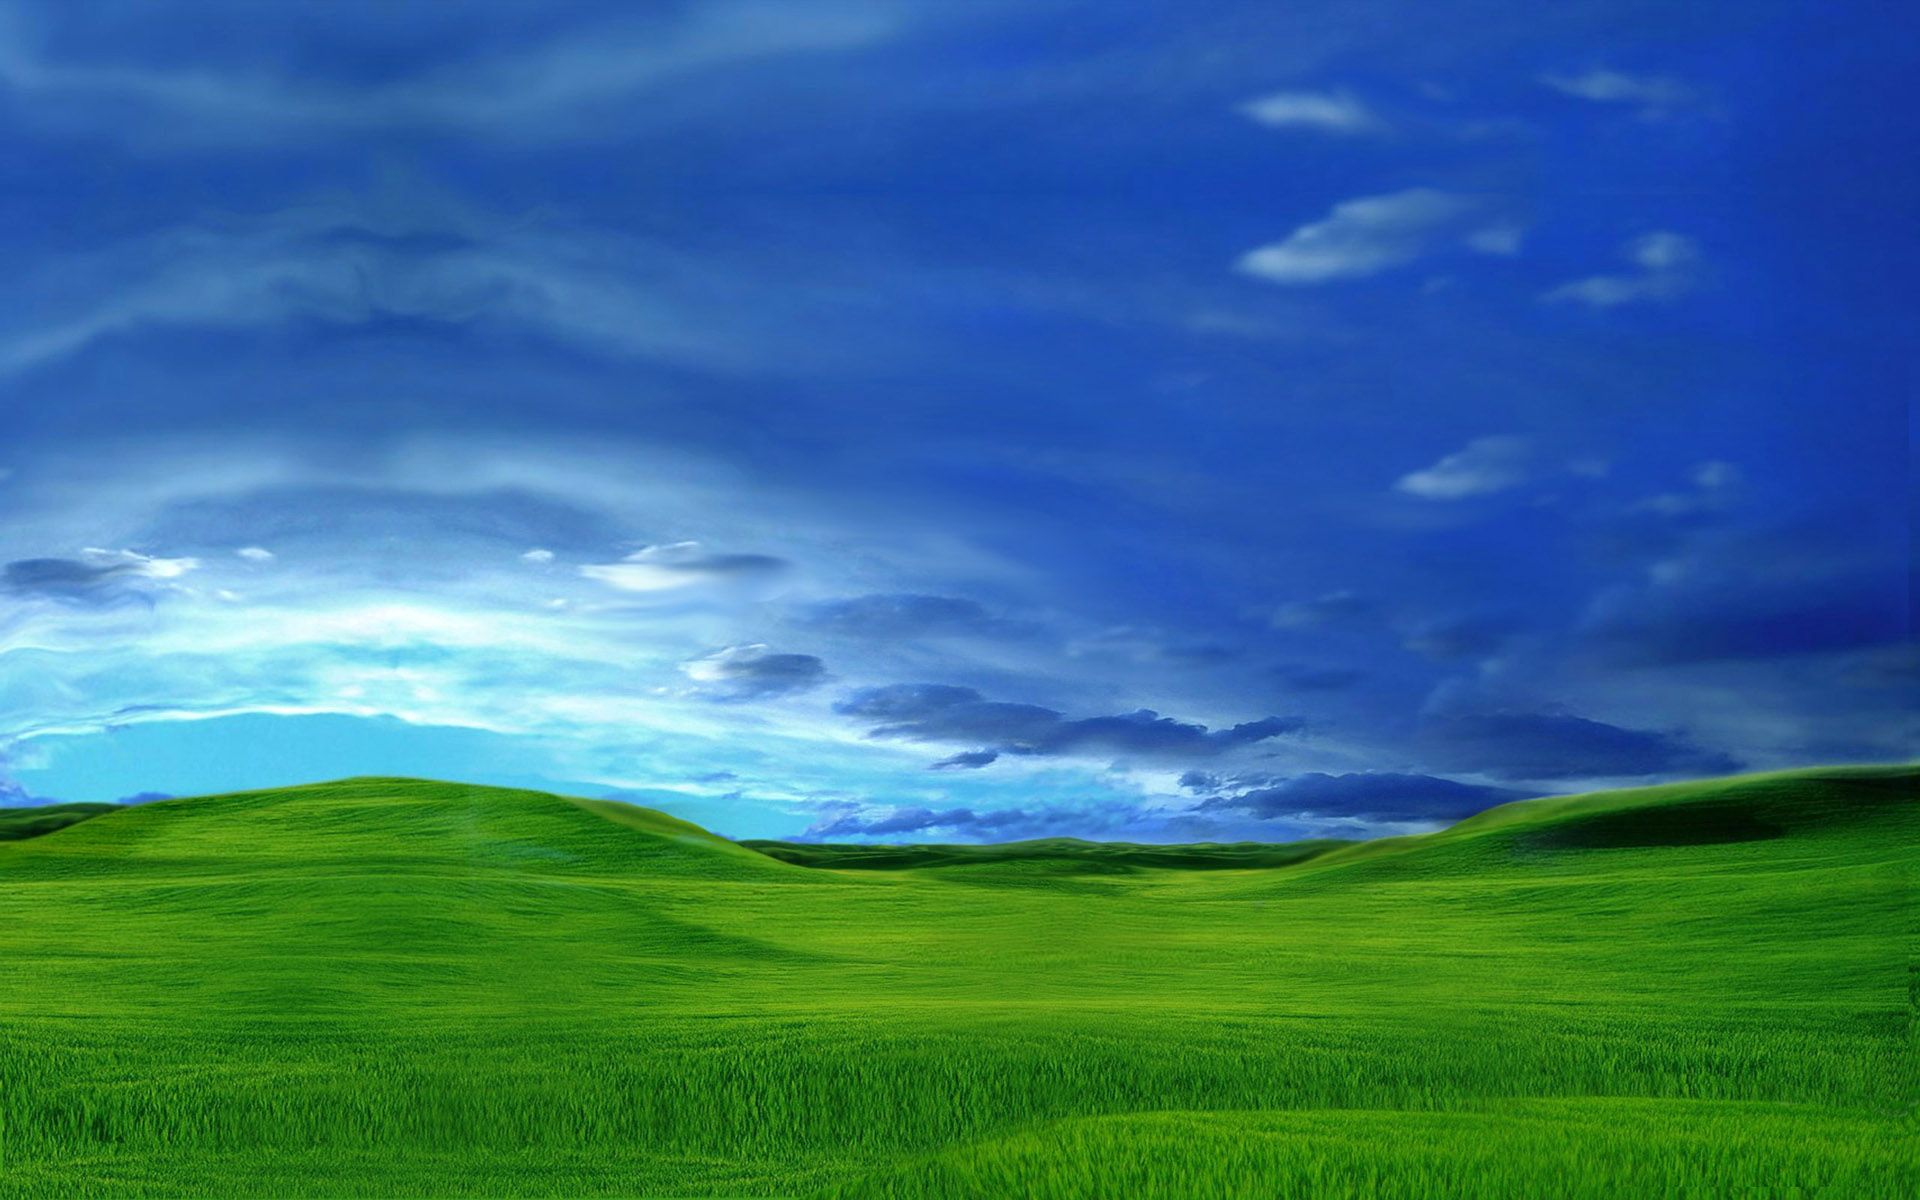 In Windows XP style 1920 x 1200 Landscape Photography MIRIADNA 1920x1200